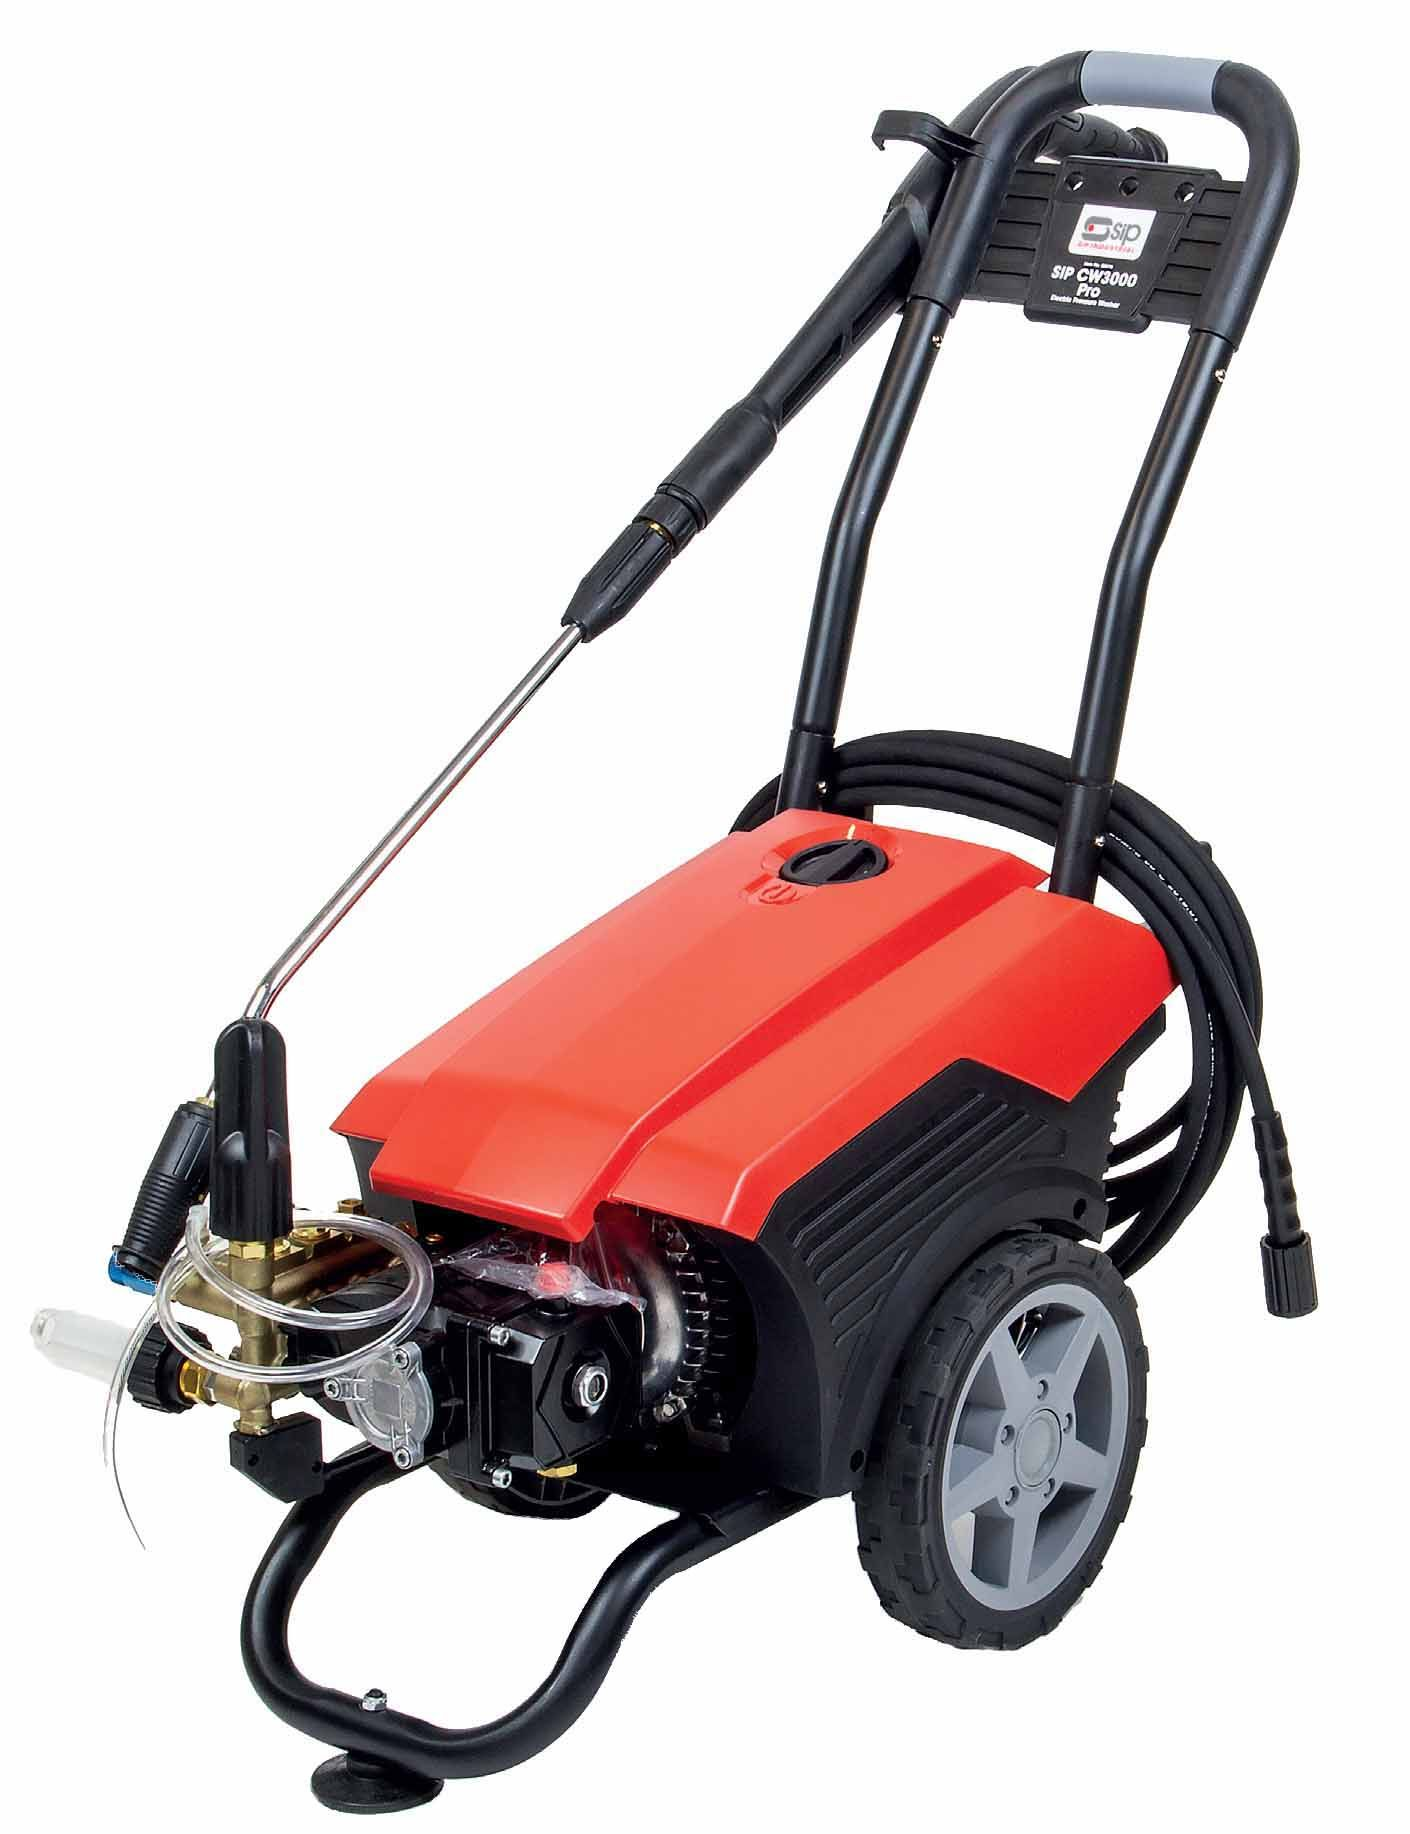 SIP CW3000 Pro Pressure Washer 120 Bar 230v